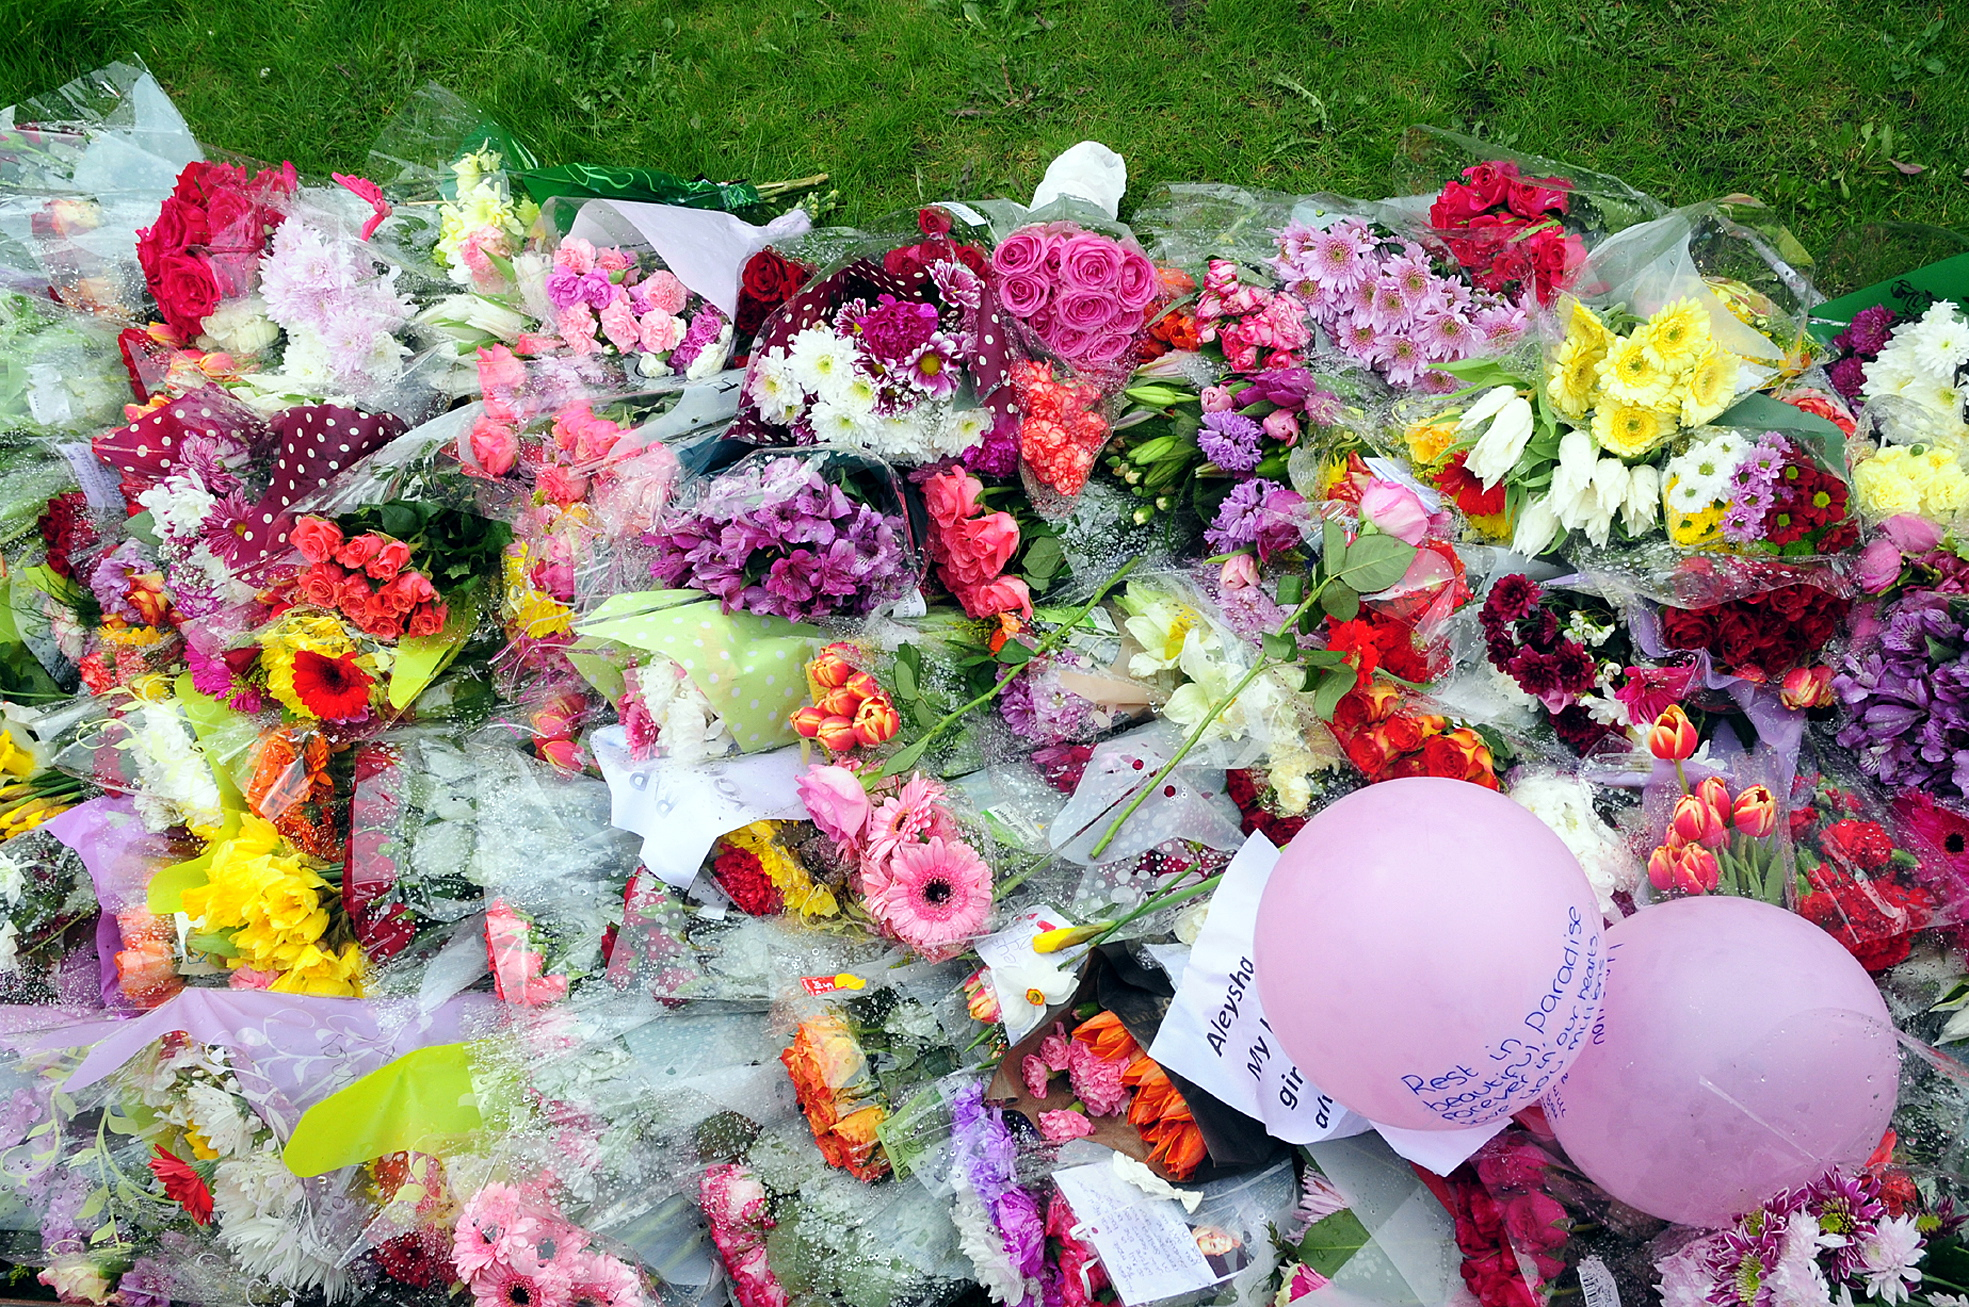 Anger as school threatens to bin flowers left in memory of hanged pupil Aleysha Rothwell